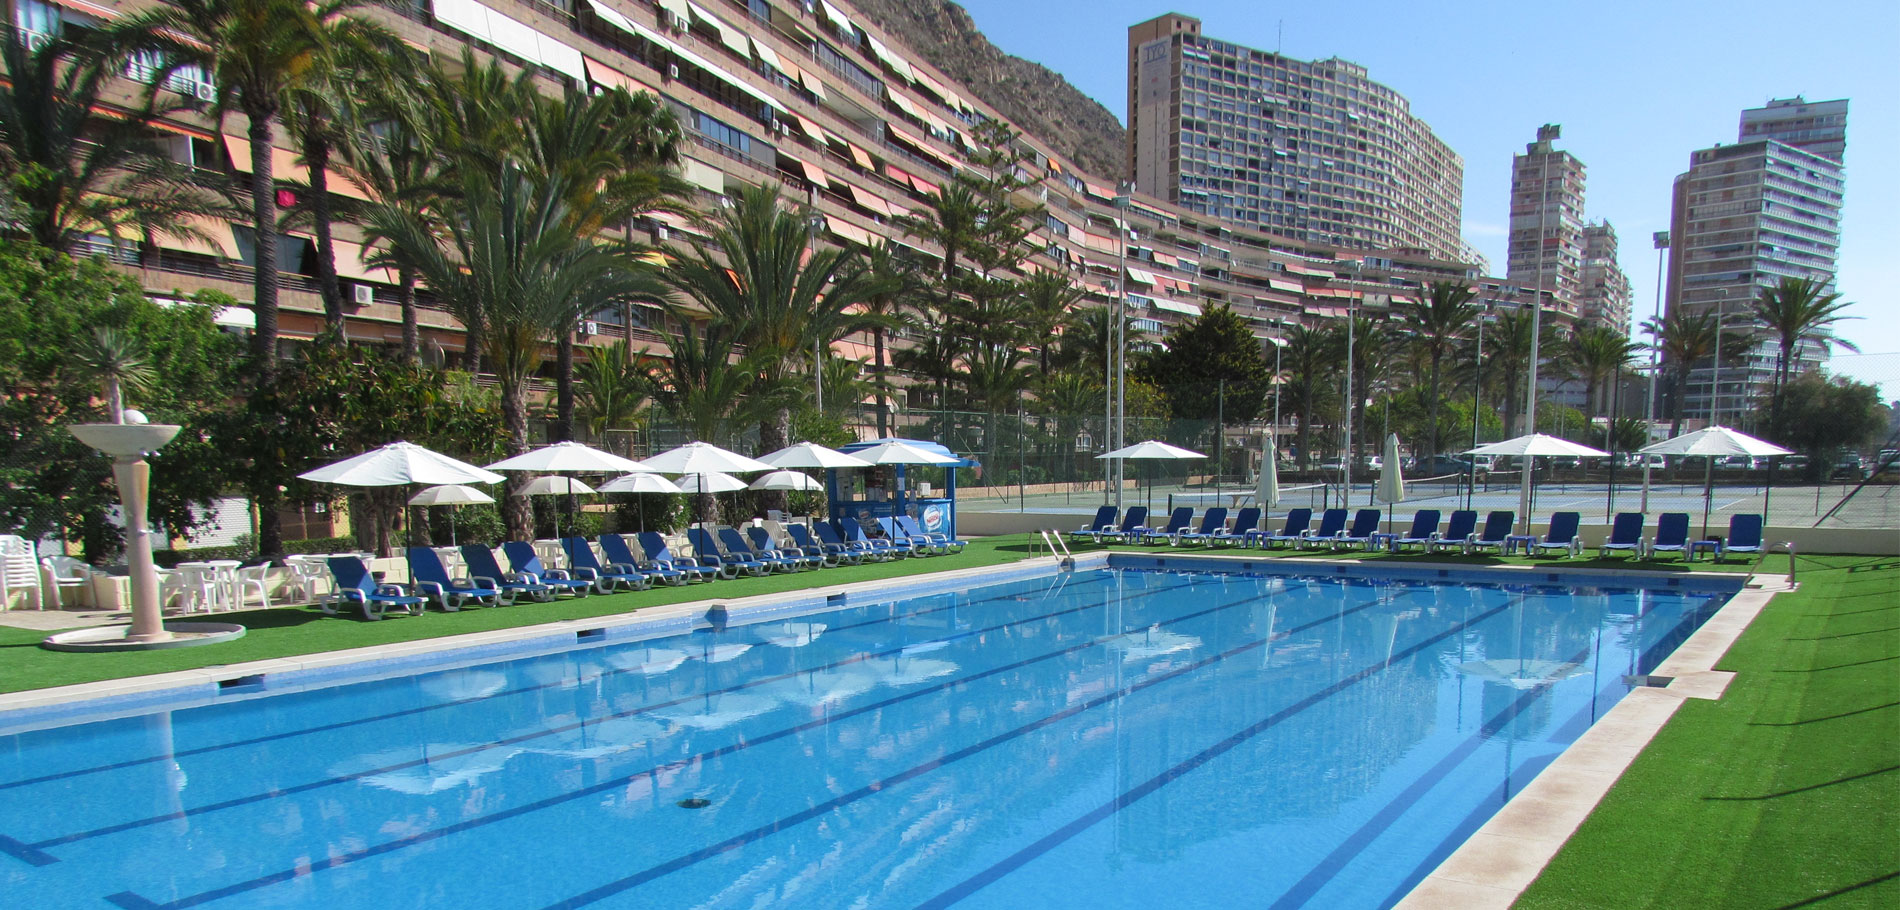 Hotel Albahía, the perfect place for your stay in Alicante | Hotel Albahía, Alicante. Official ...